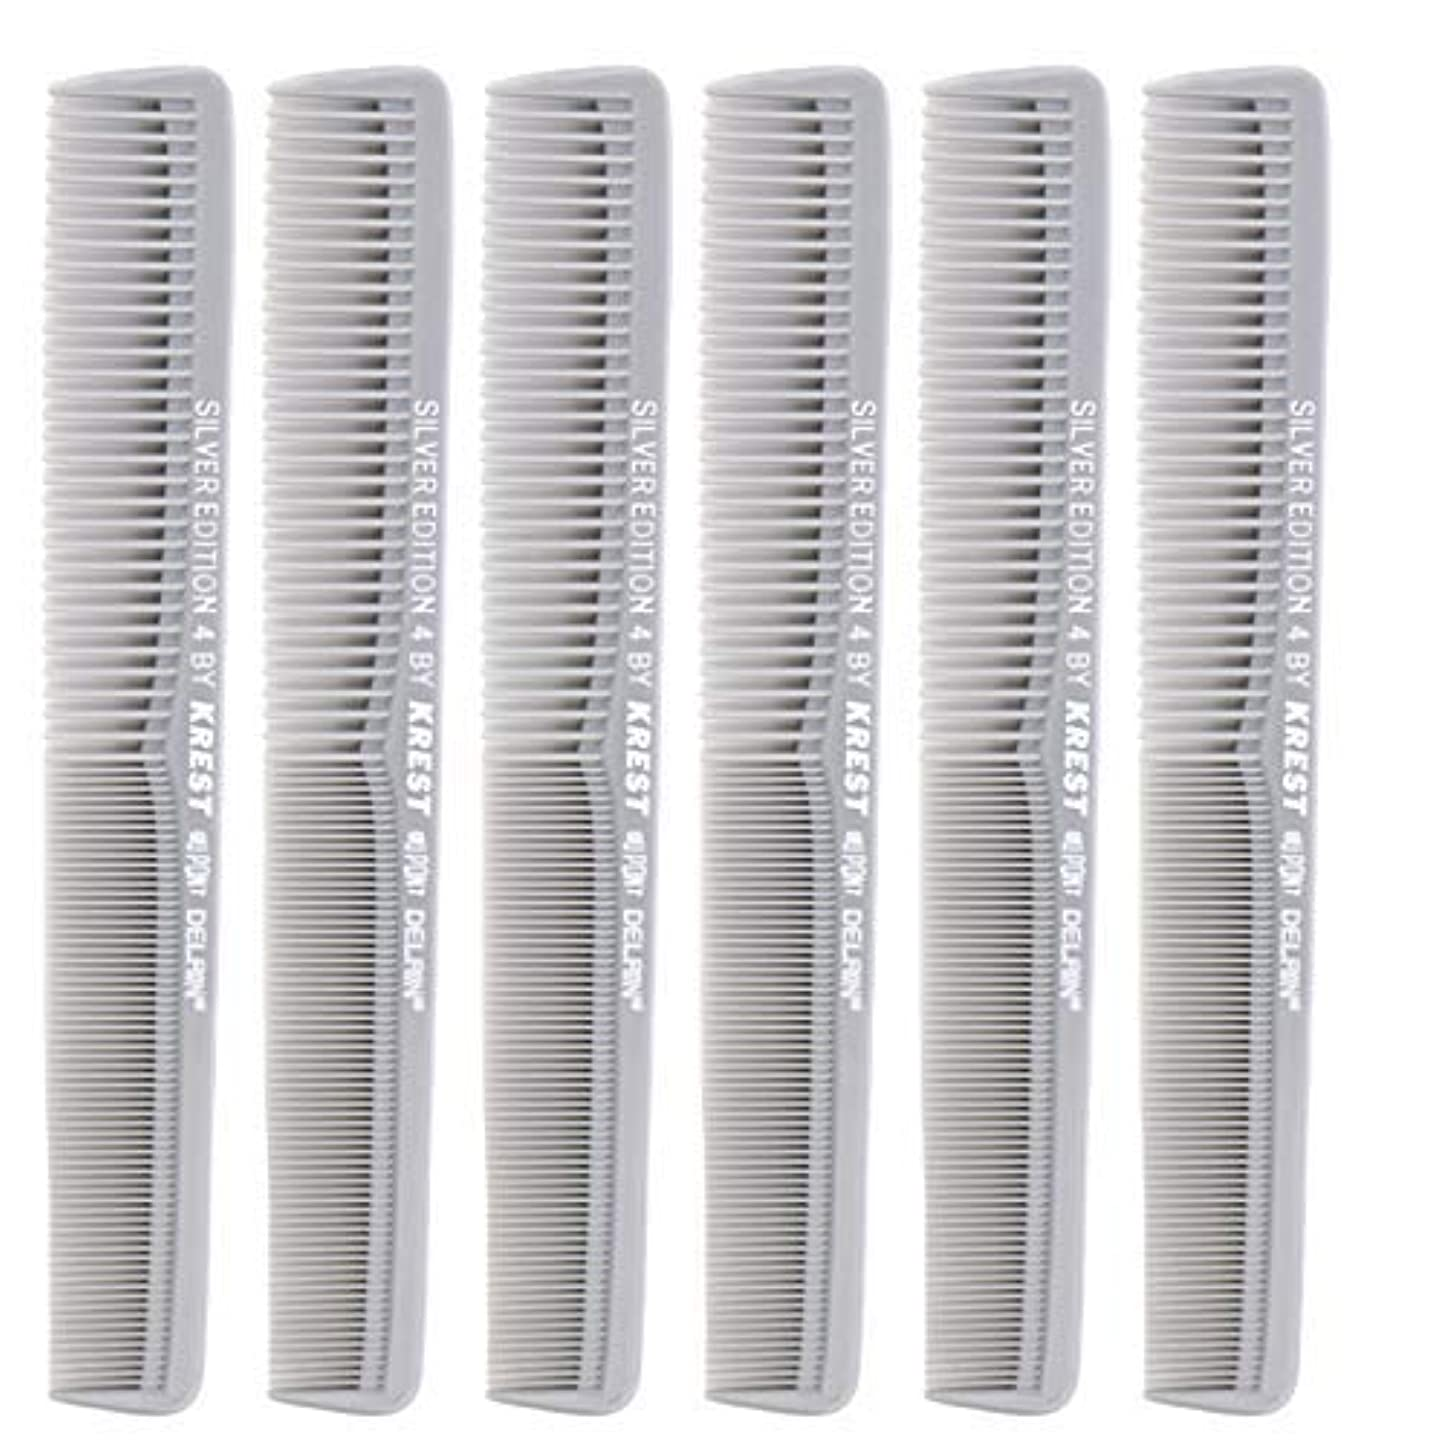 7 In. Silver Edition Heat Resistant All Purpose Hair Comb Model #4 Krest Comb, [並行輸入品]